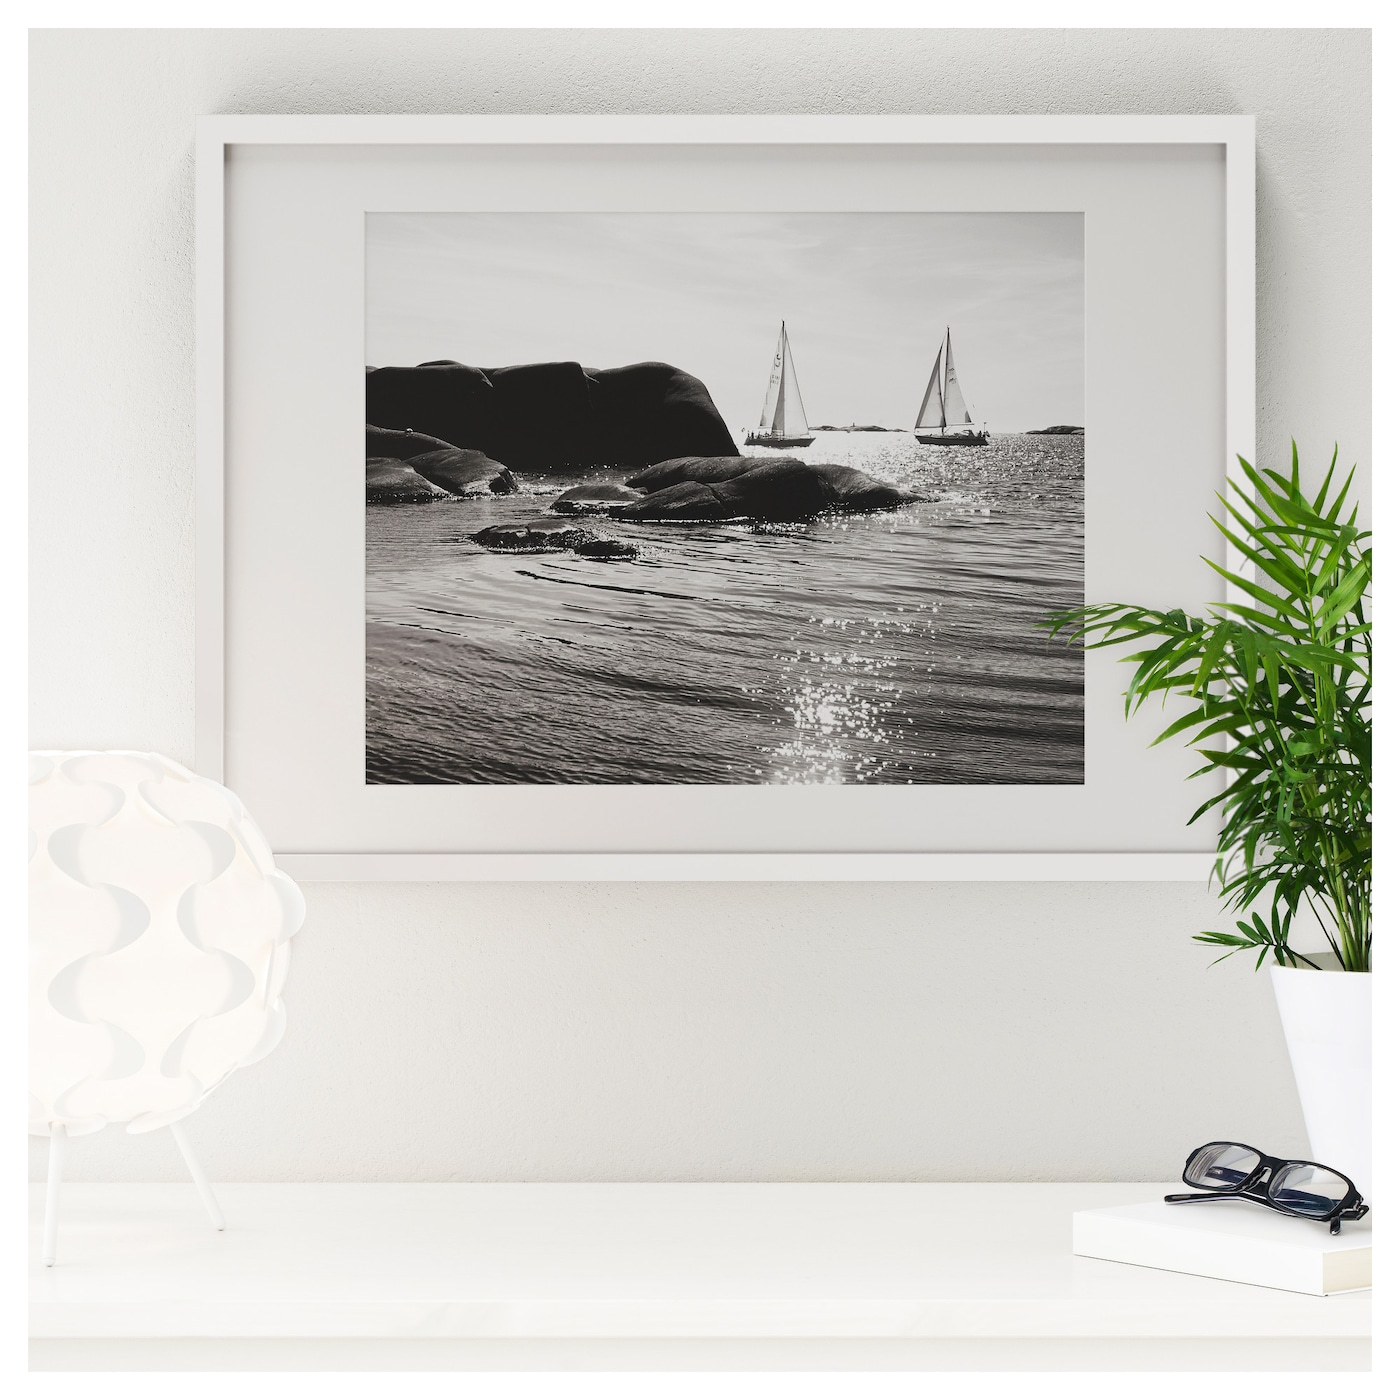 Ikea Ribba Picture Photo Frame White Home Bedroom Living Room 50x70cm